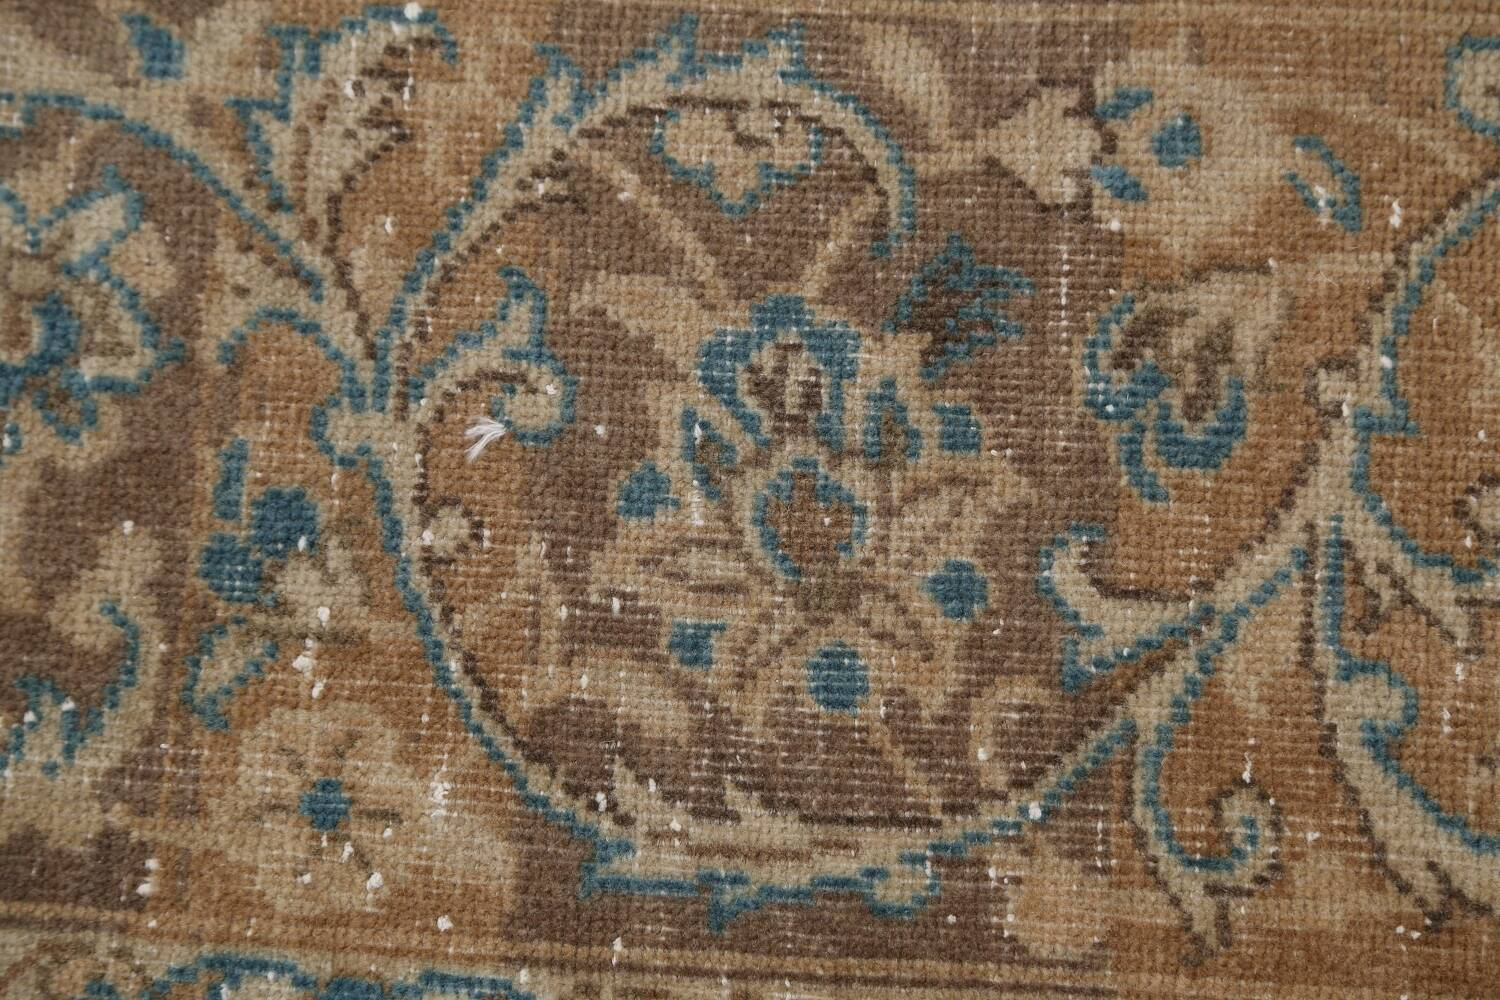 Antique Muted Floral Mashad Persian Area Rug 9x13 image 9